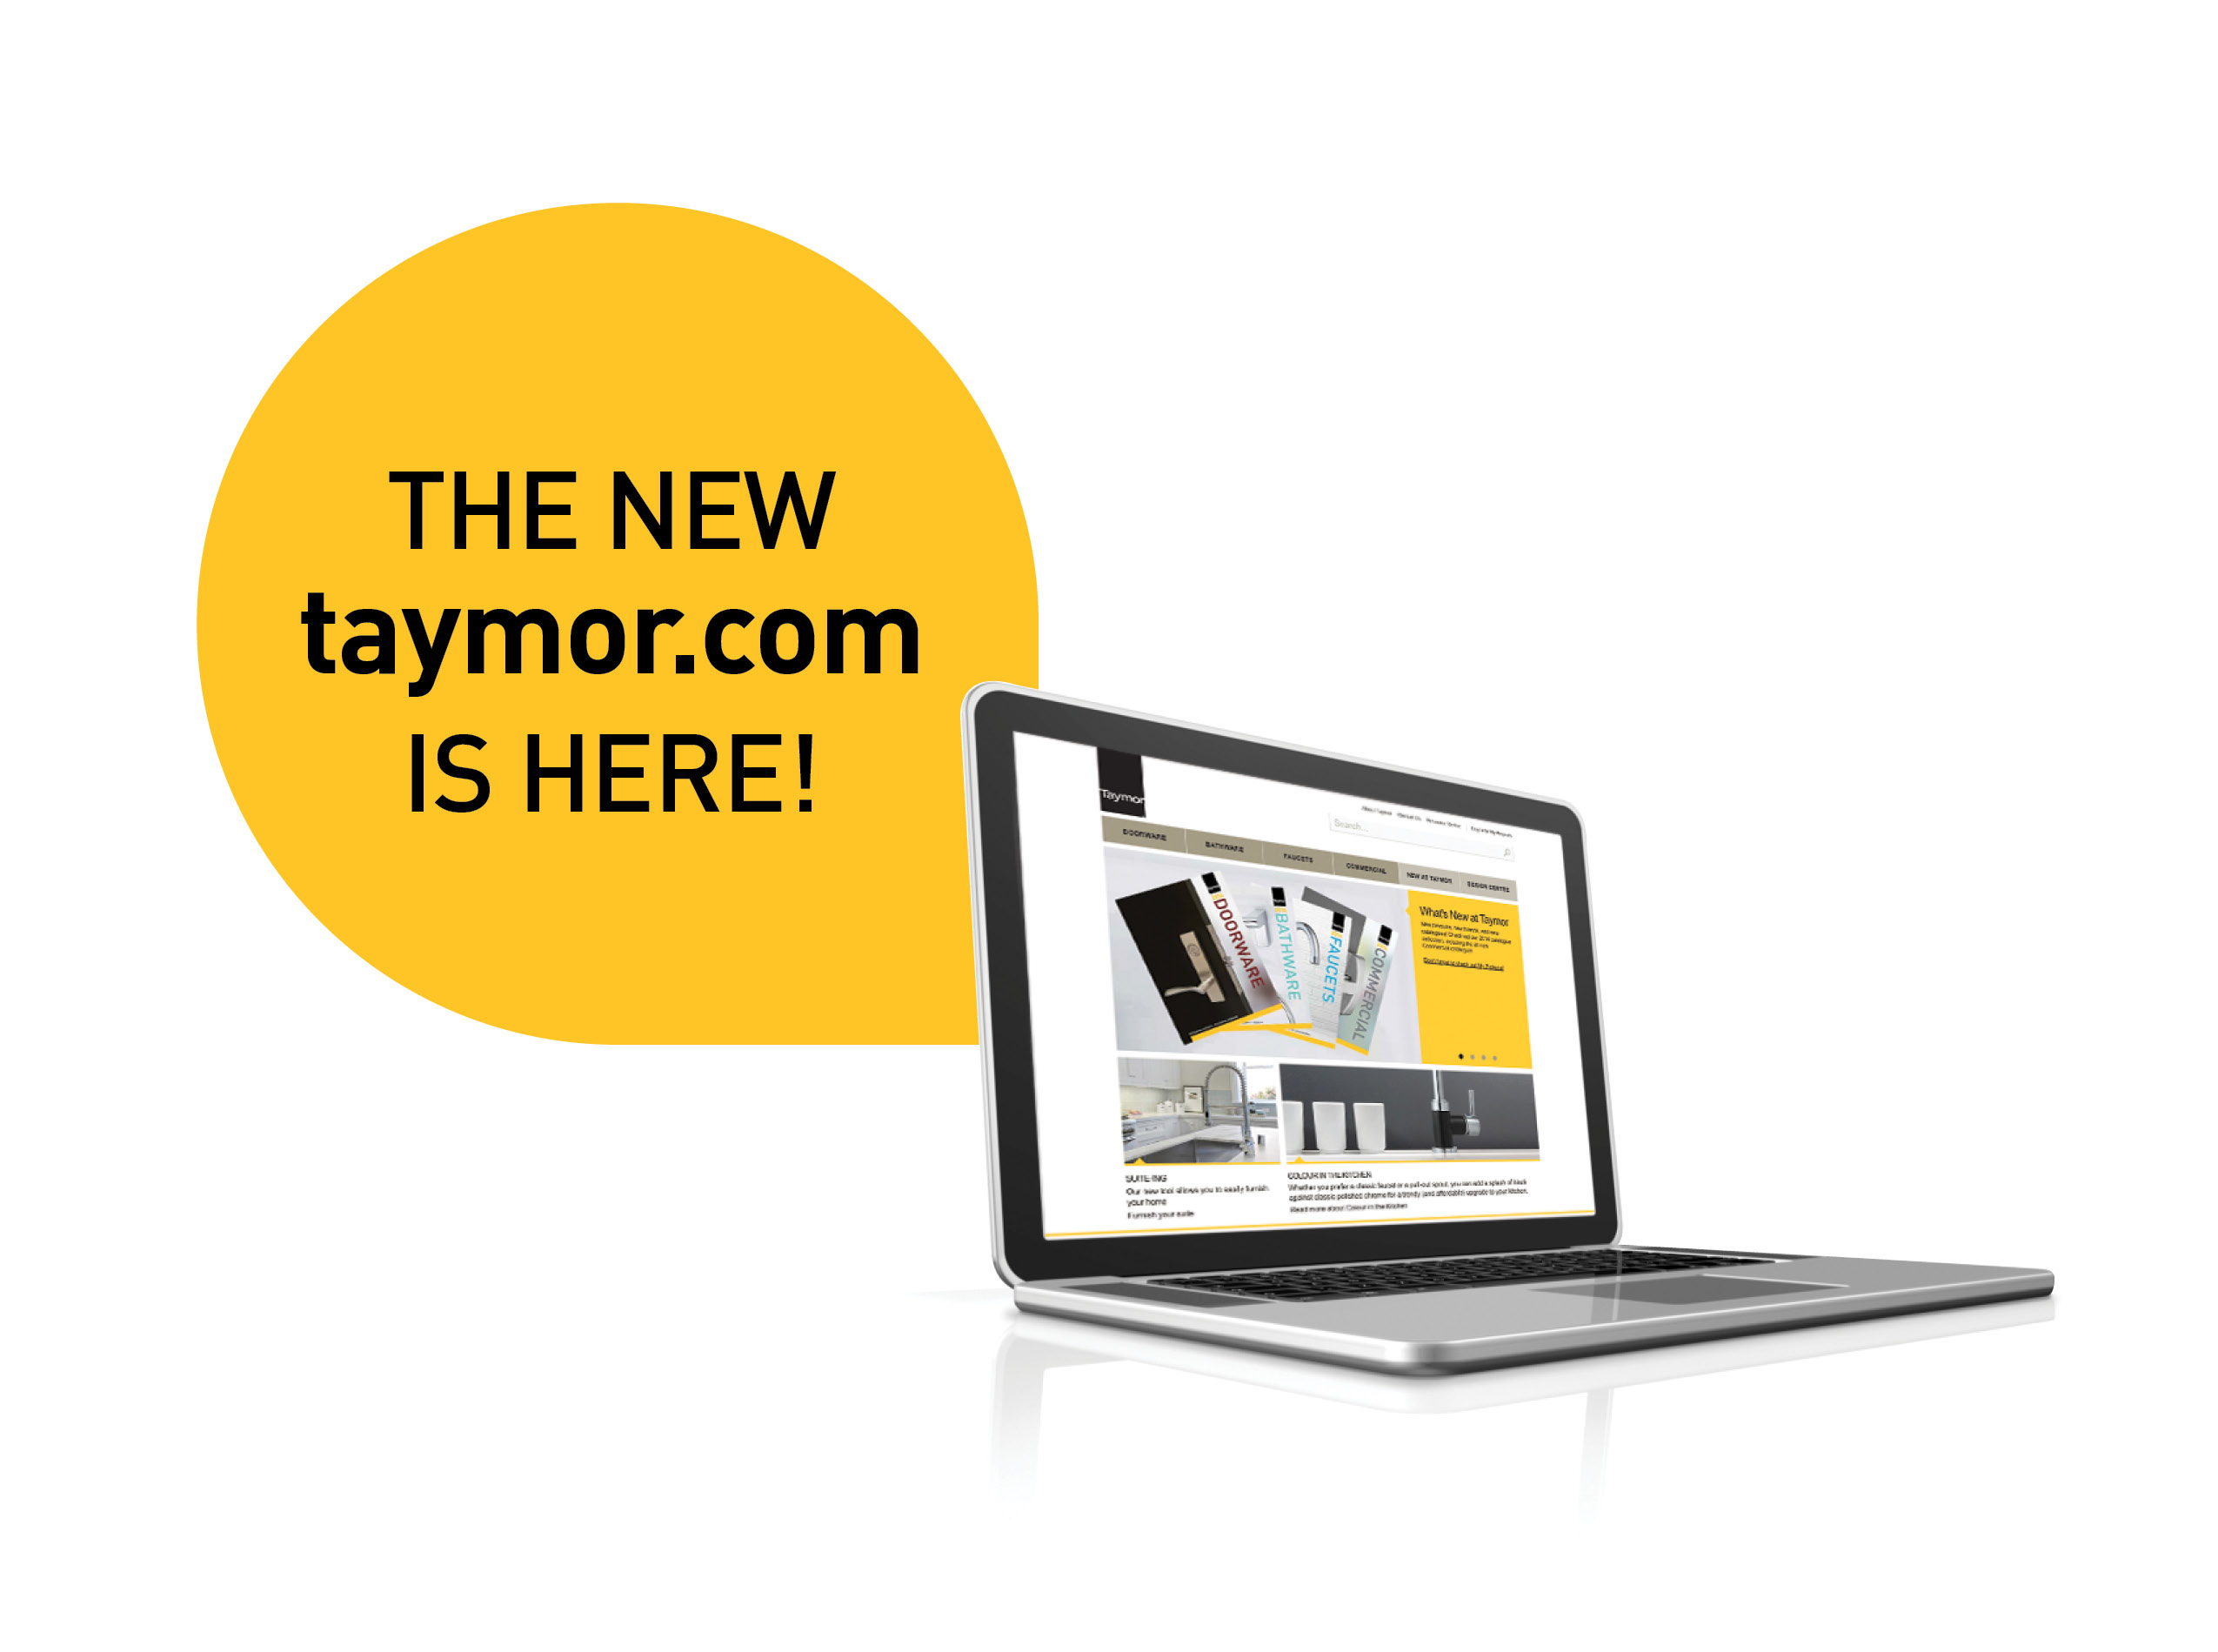 The New Taymor.com is here